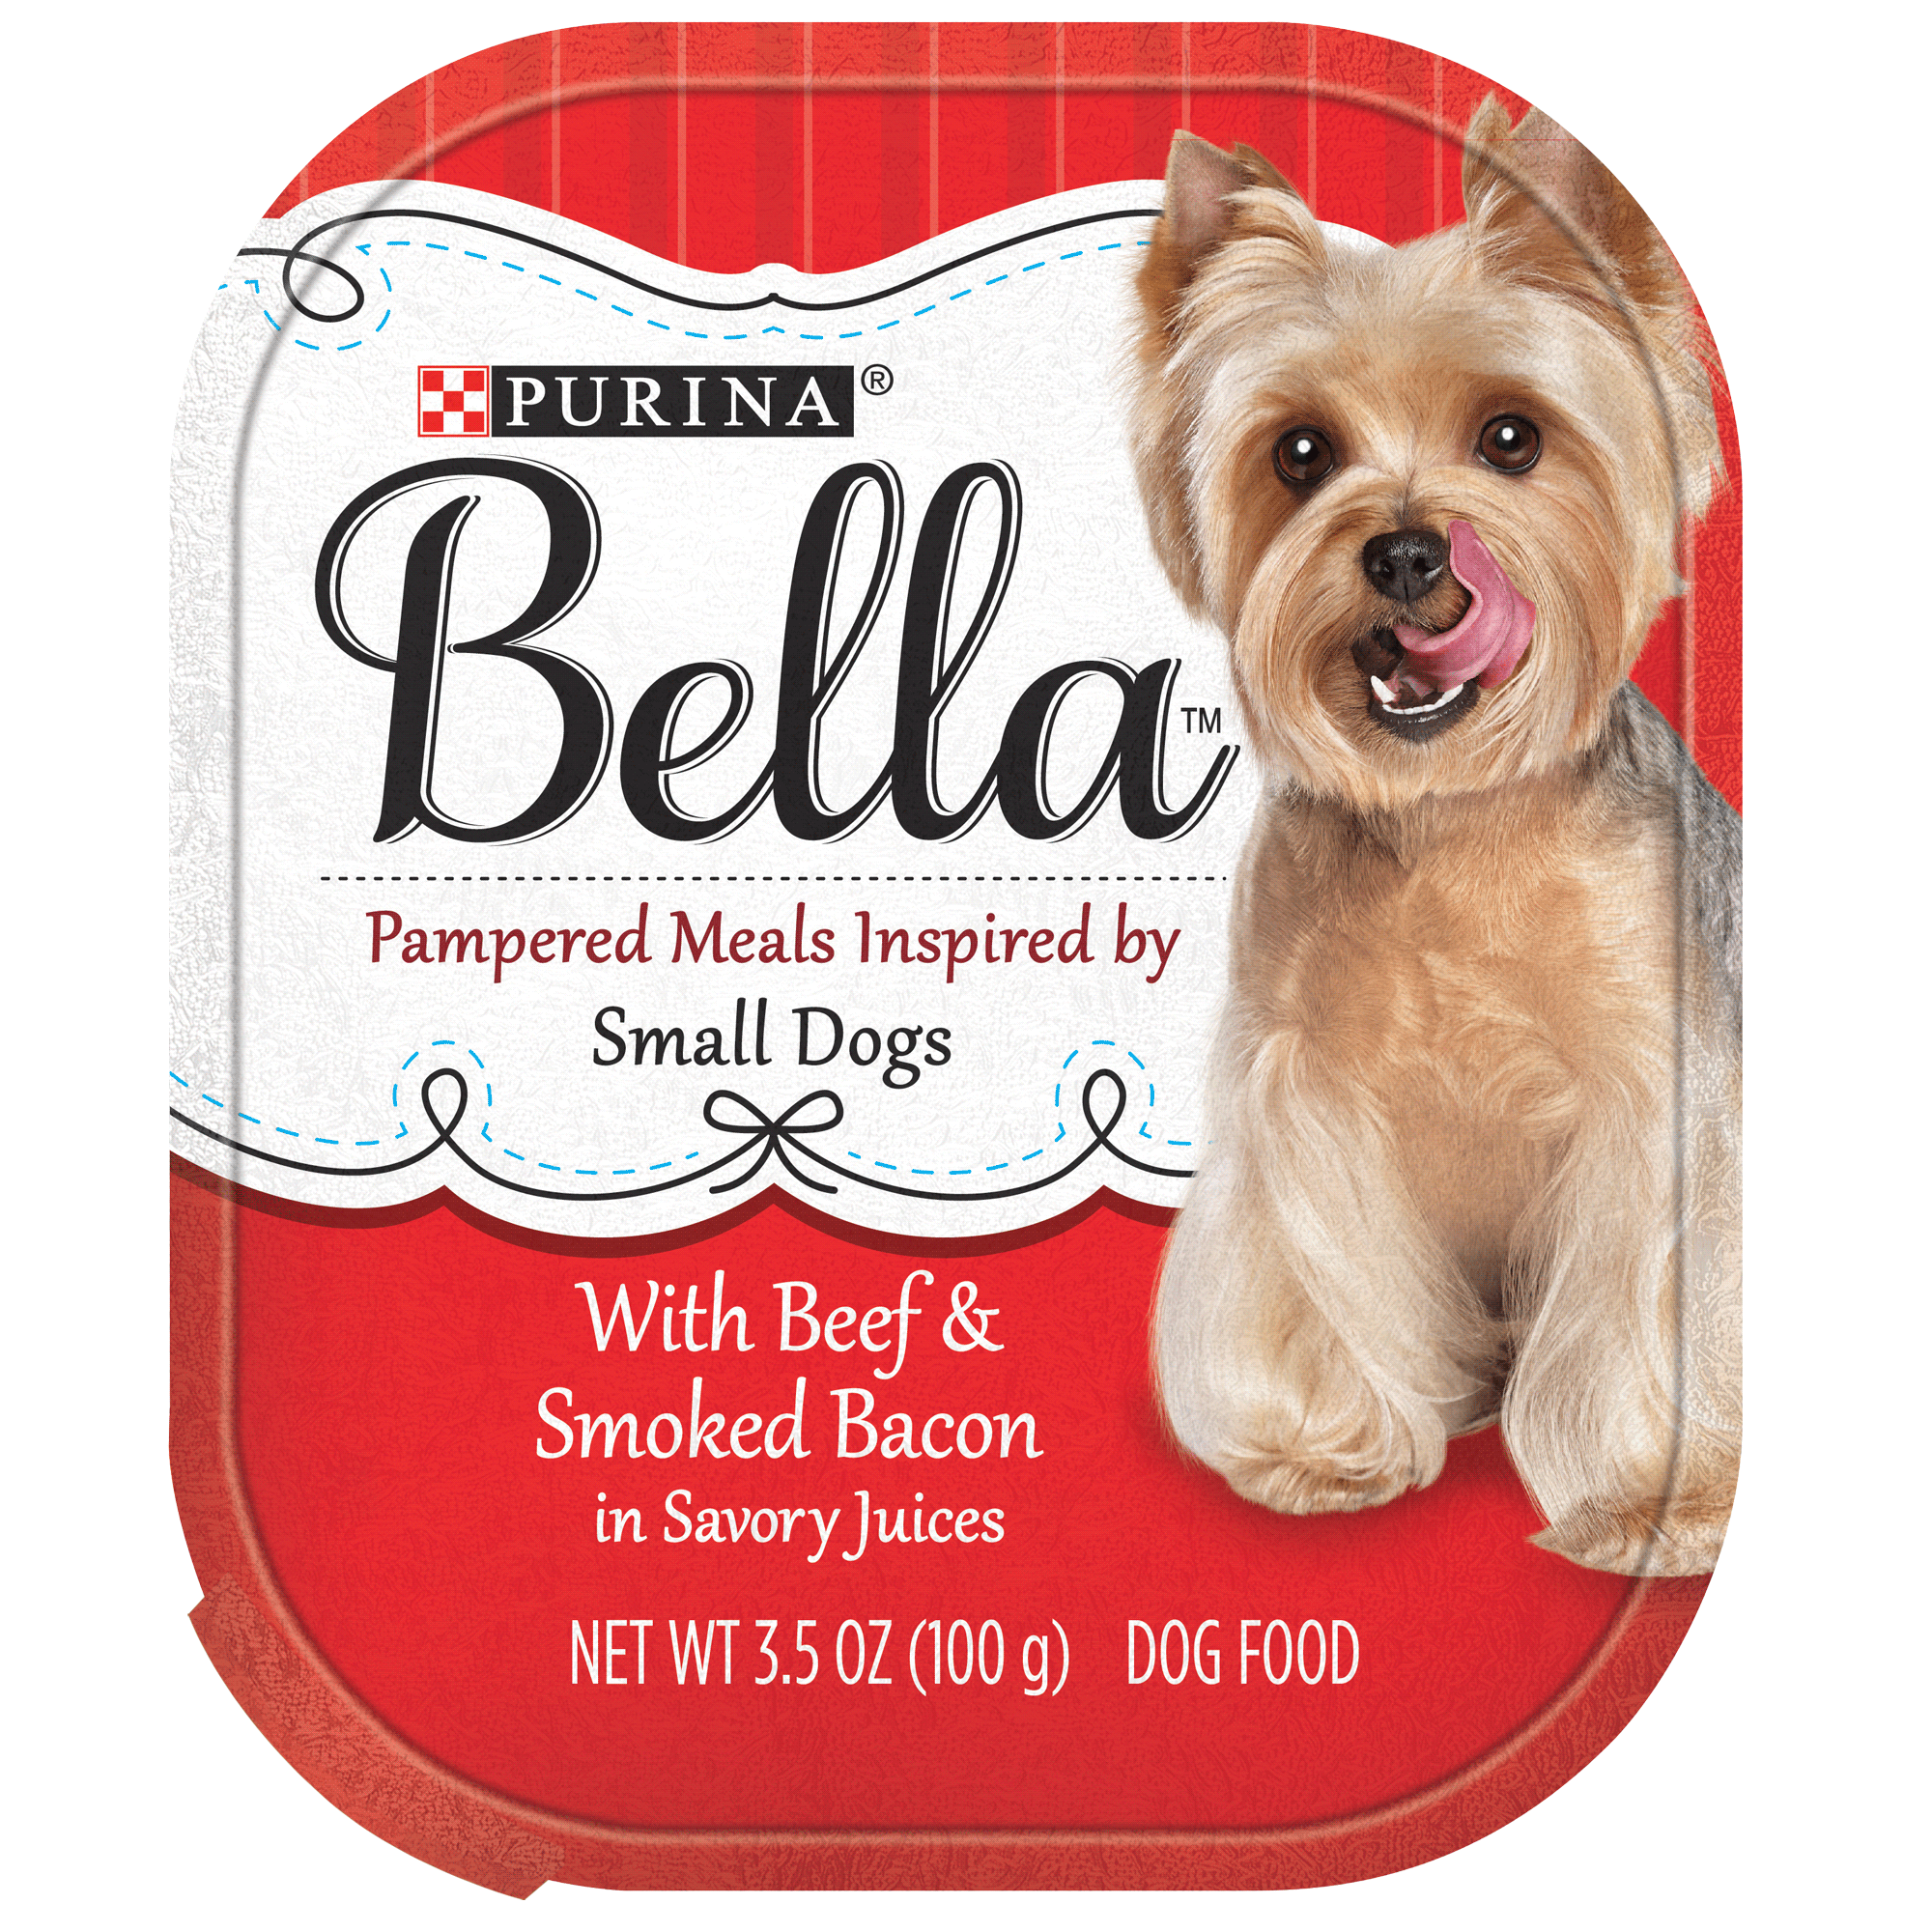 Purina Bella with Beef & Smoked Bacon In Savory Juices Adult Wet Dog Food, 3.5 oz. Tray (12 Pack)